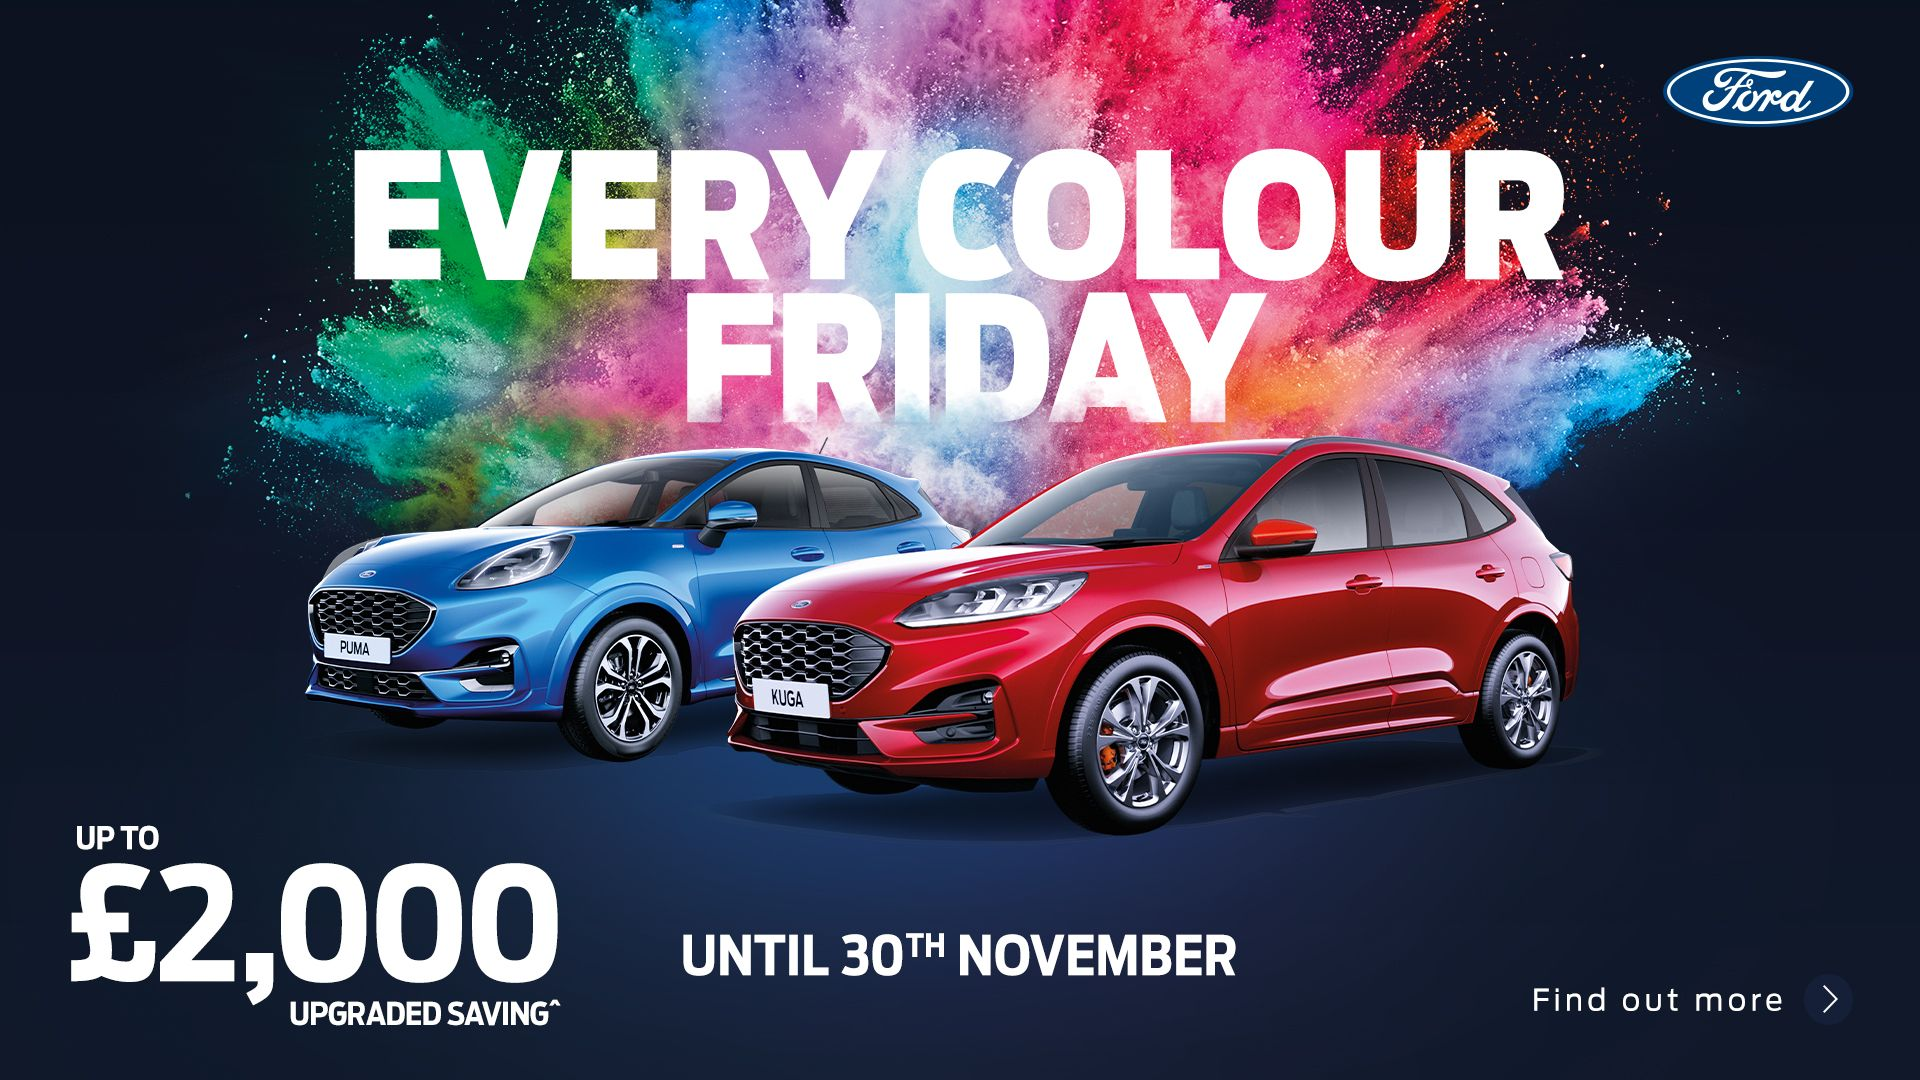 Our Every Colour Friday saving of up to £2000†